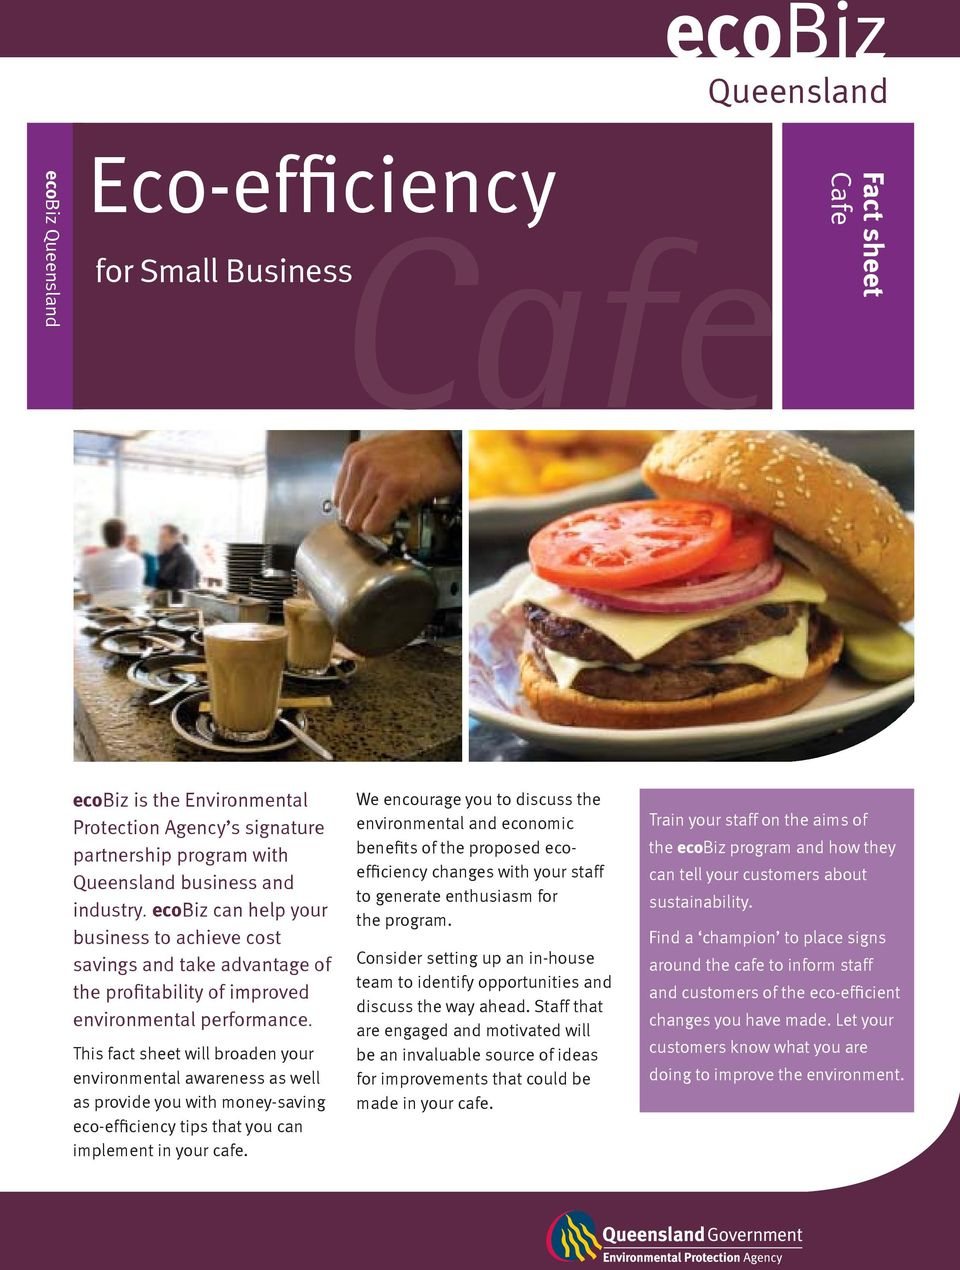 This fact sheet will broaden your environmental awareness as well as provide you with money-saving eco-efficiency tips that you can implement in your cafe.